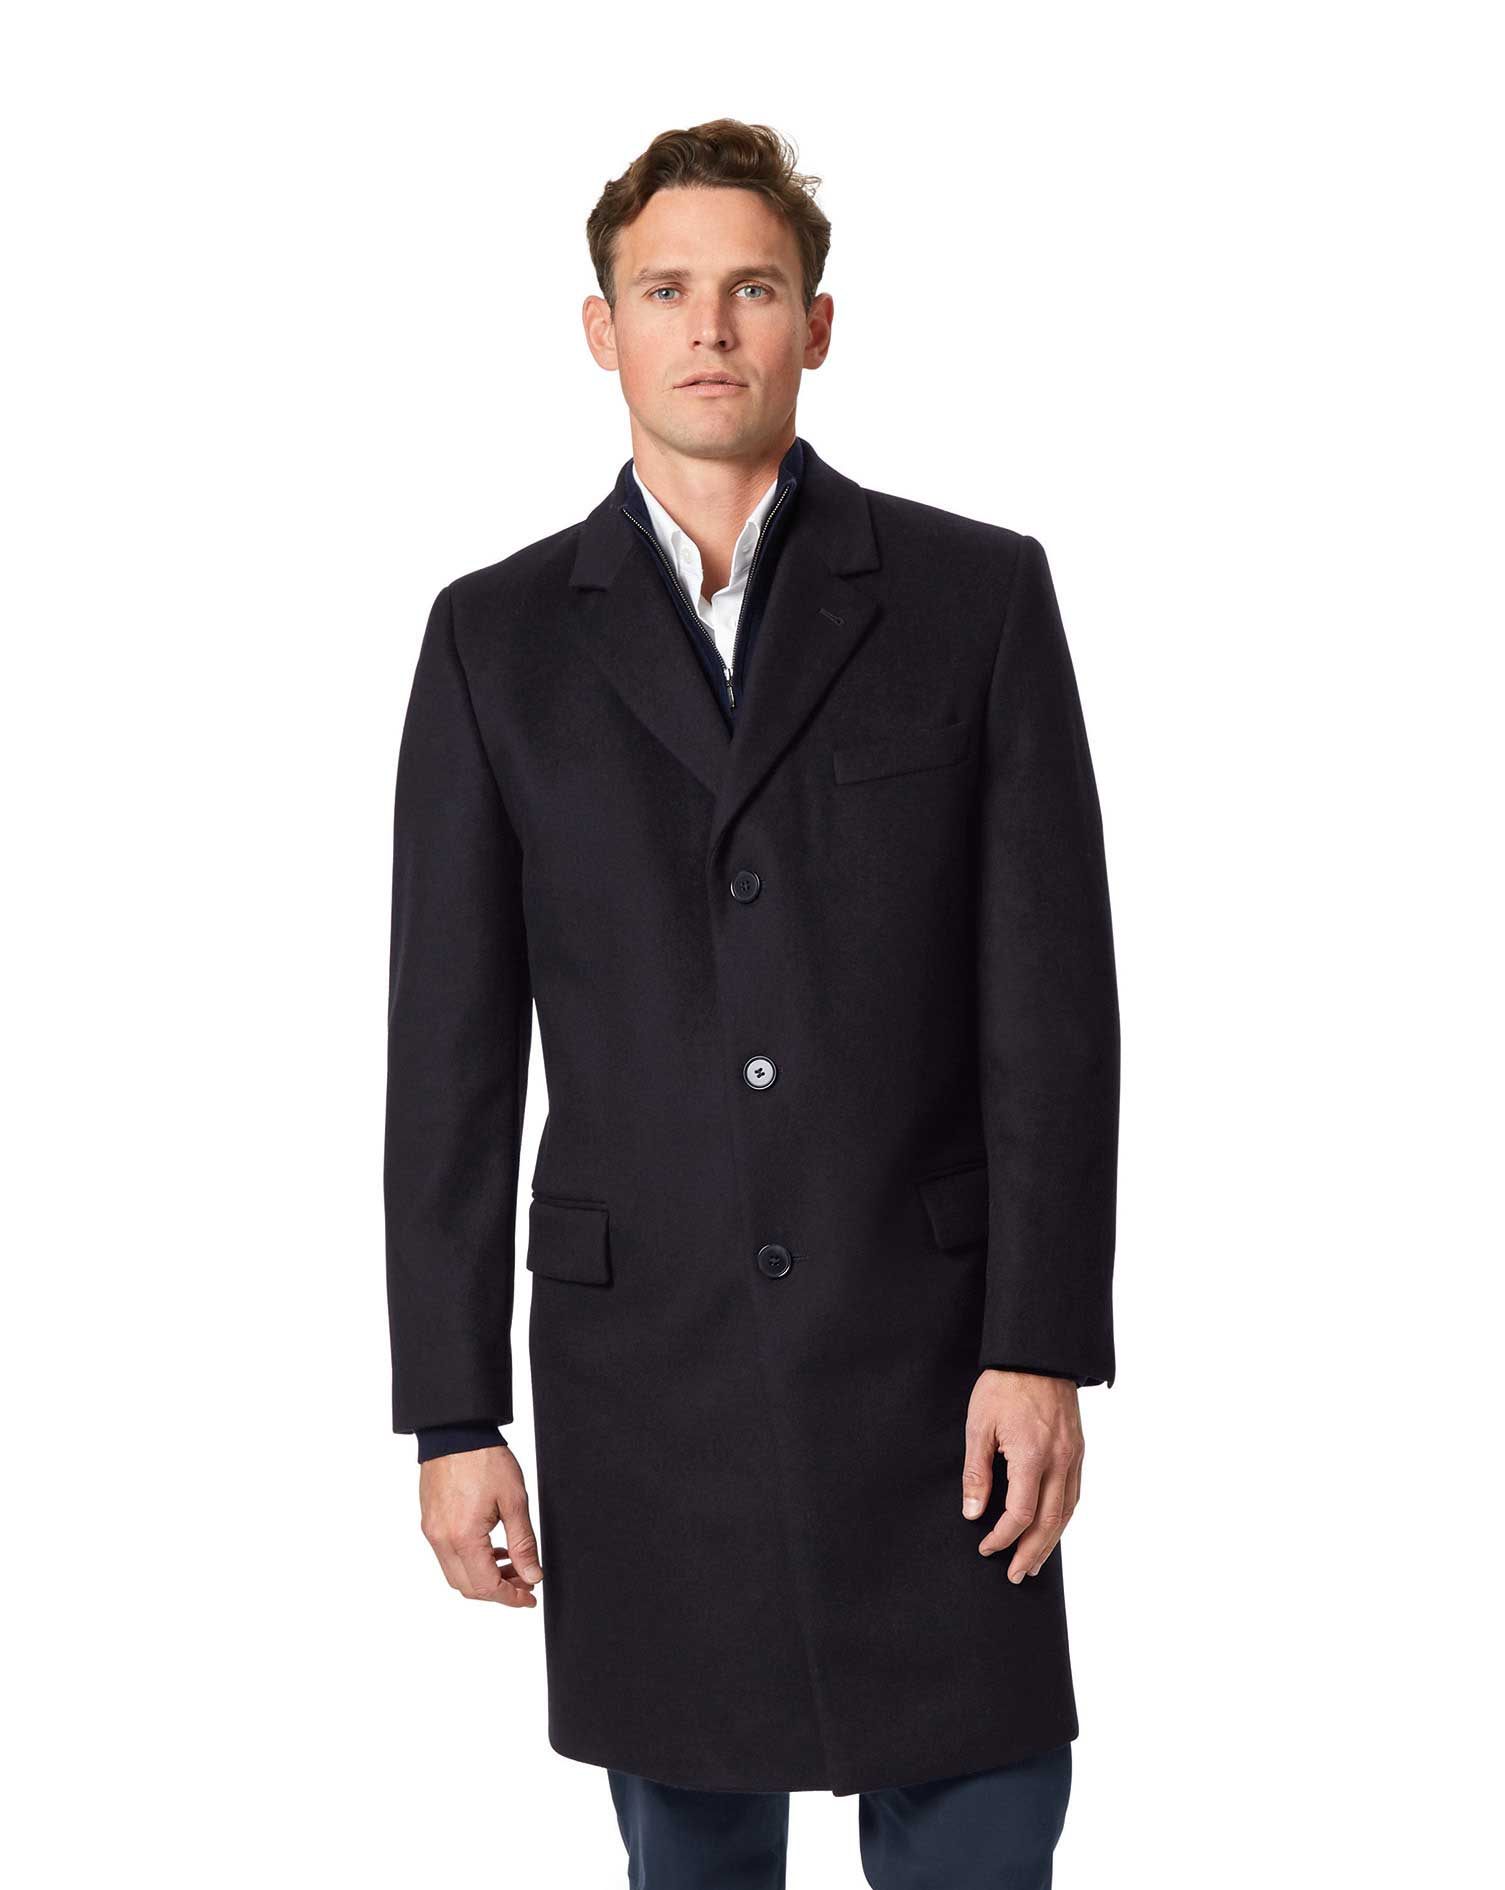 Navy Italian Wool and Cashmere Overcoat Size 48 Regular by Charles Tyrwhitt